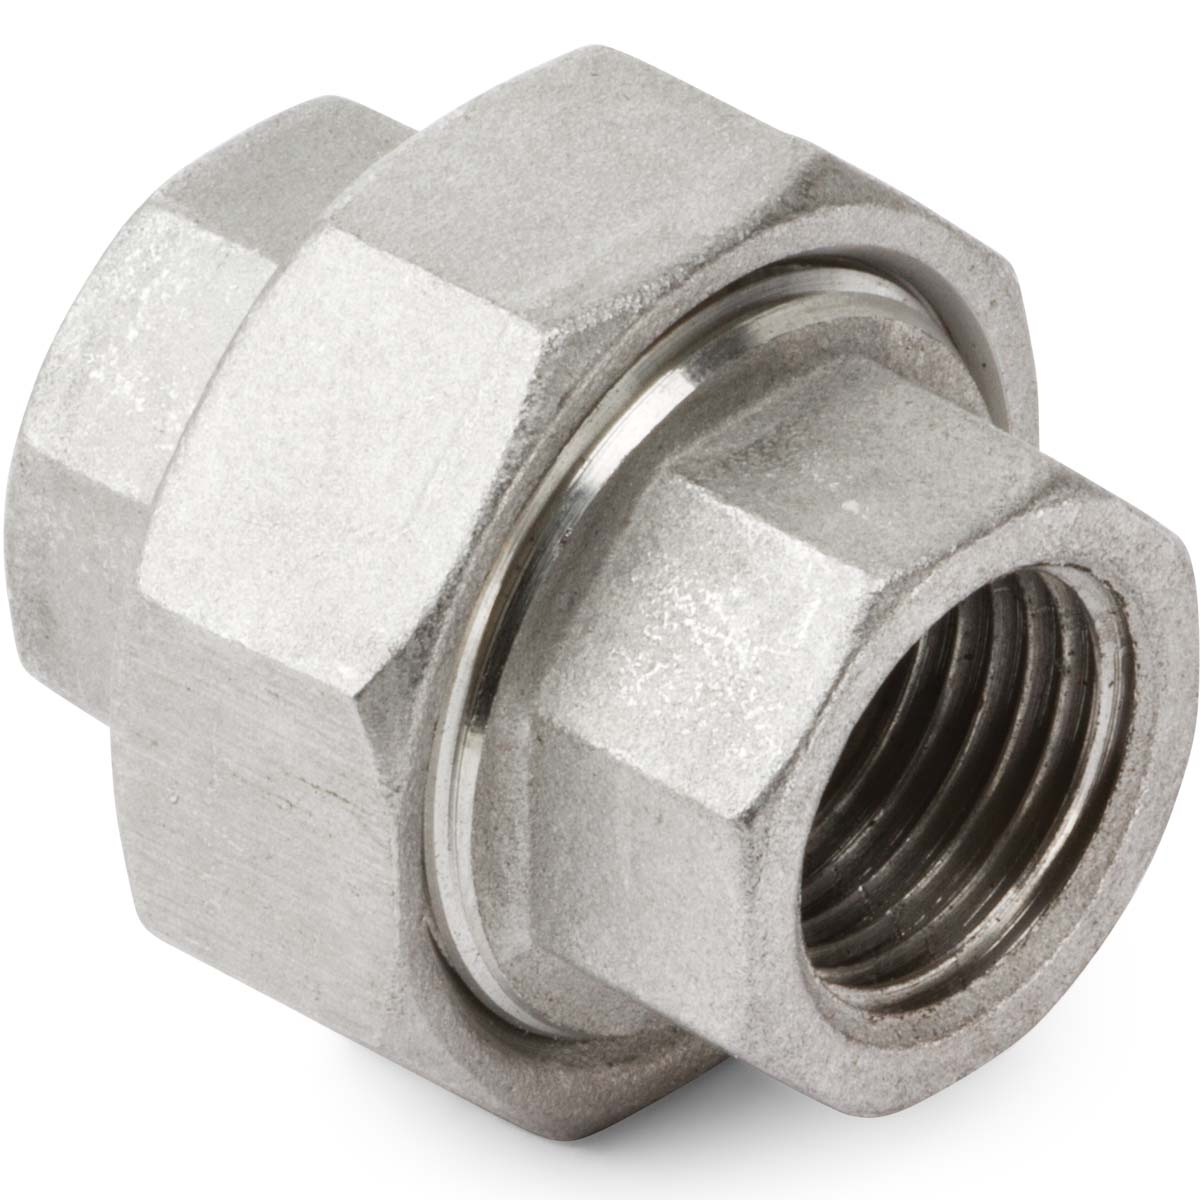 Stainless steel ground joint union kimball midwest